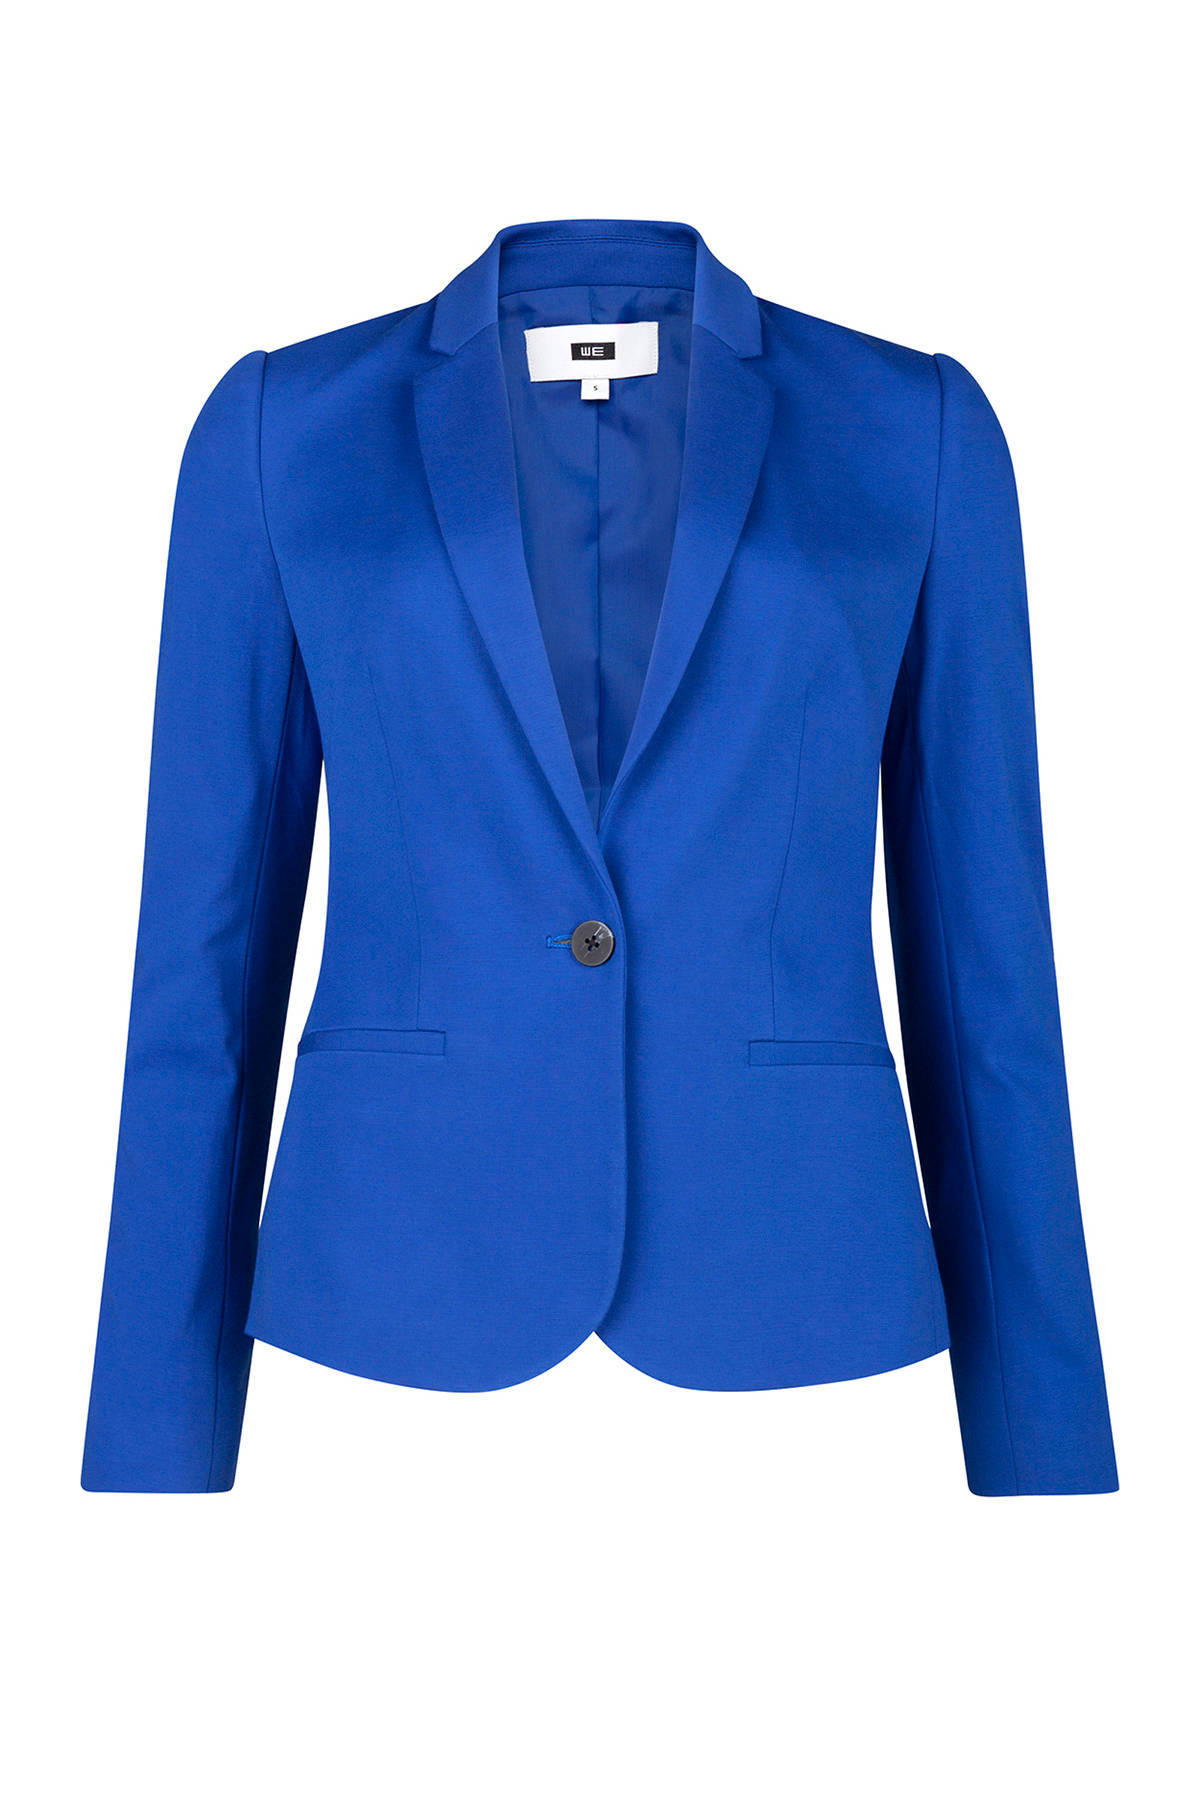 WE Fashion jersey blazer konungsblauw | wehkamp